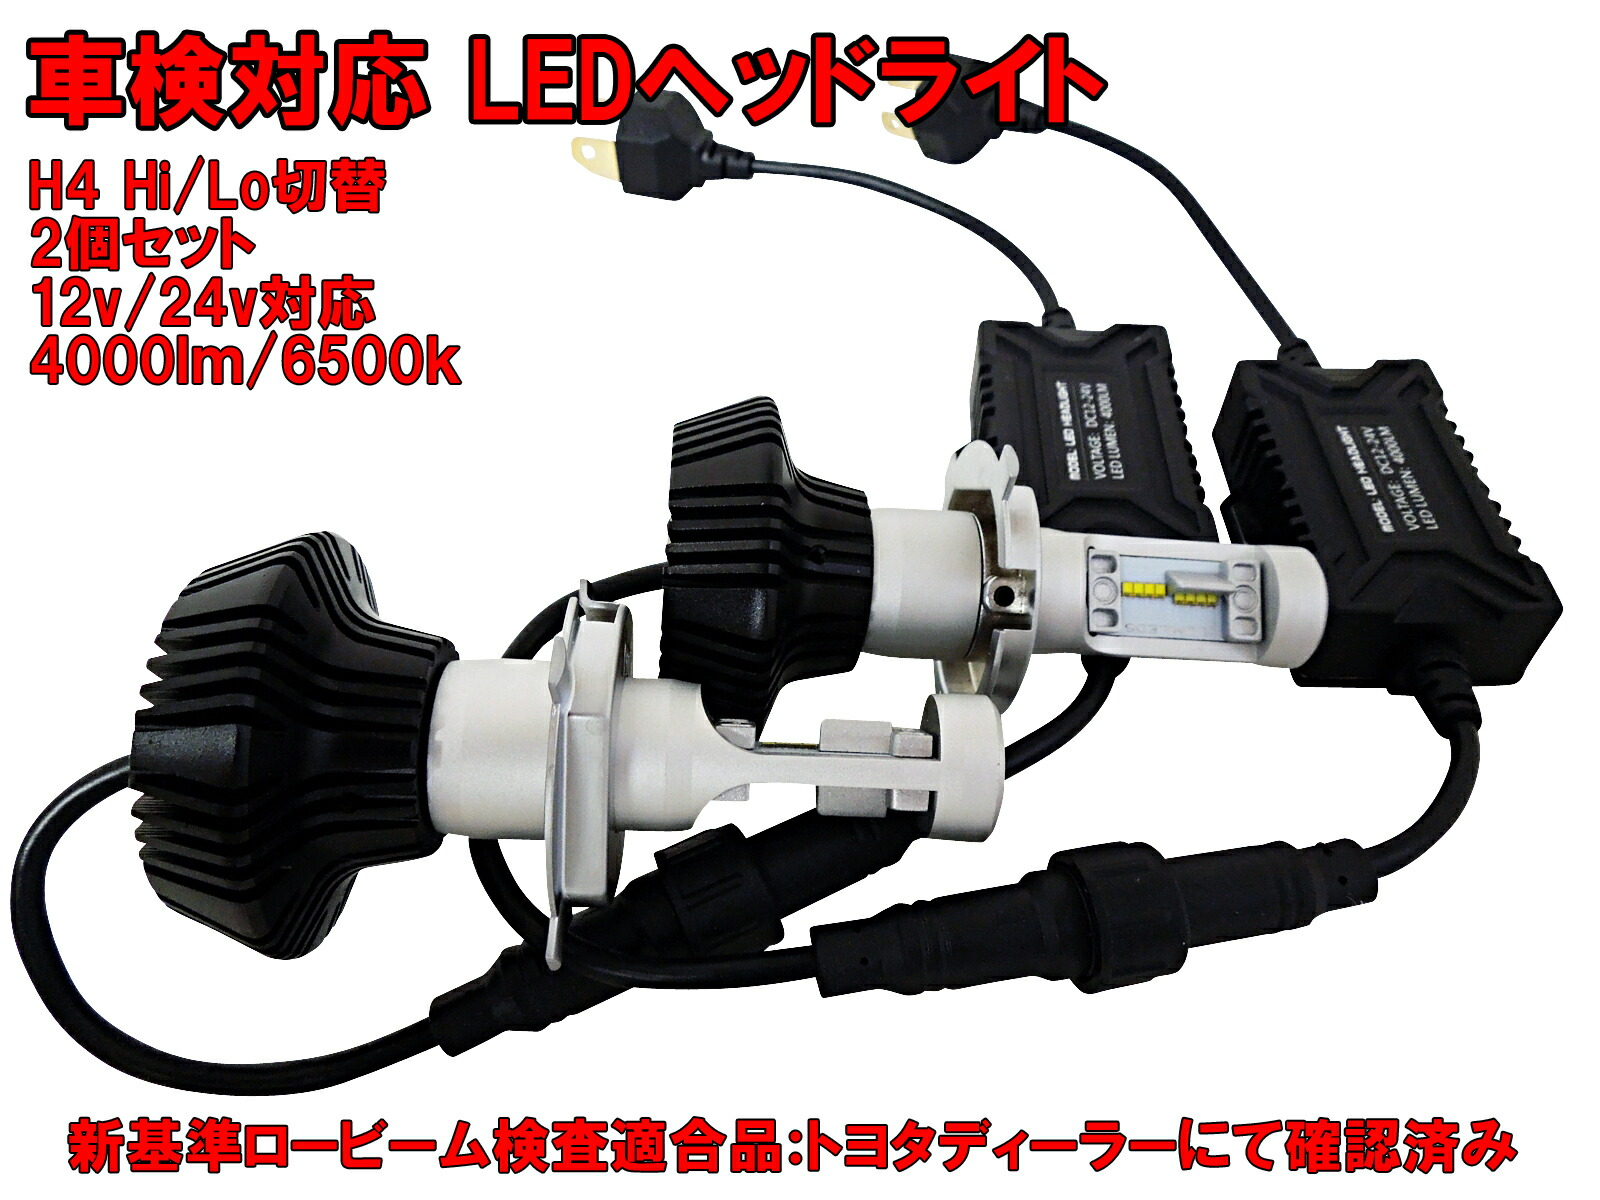 ������̵���ۼ�����θ�!!LED�إåɥ饤�ȡ�LED�إåɥ��ס�HID�Ϥ⤦�Ť�!!H4